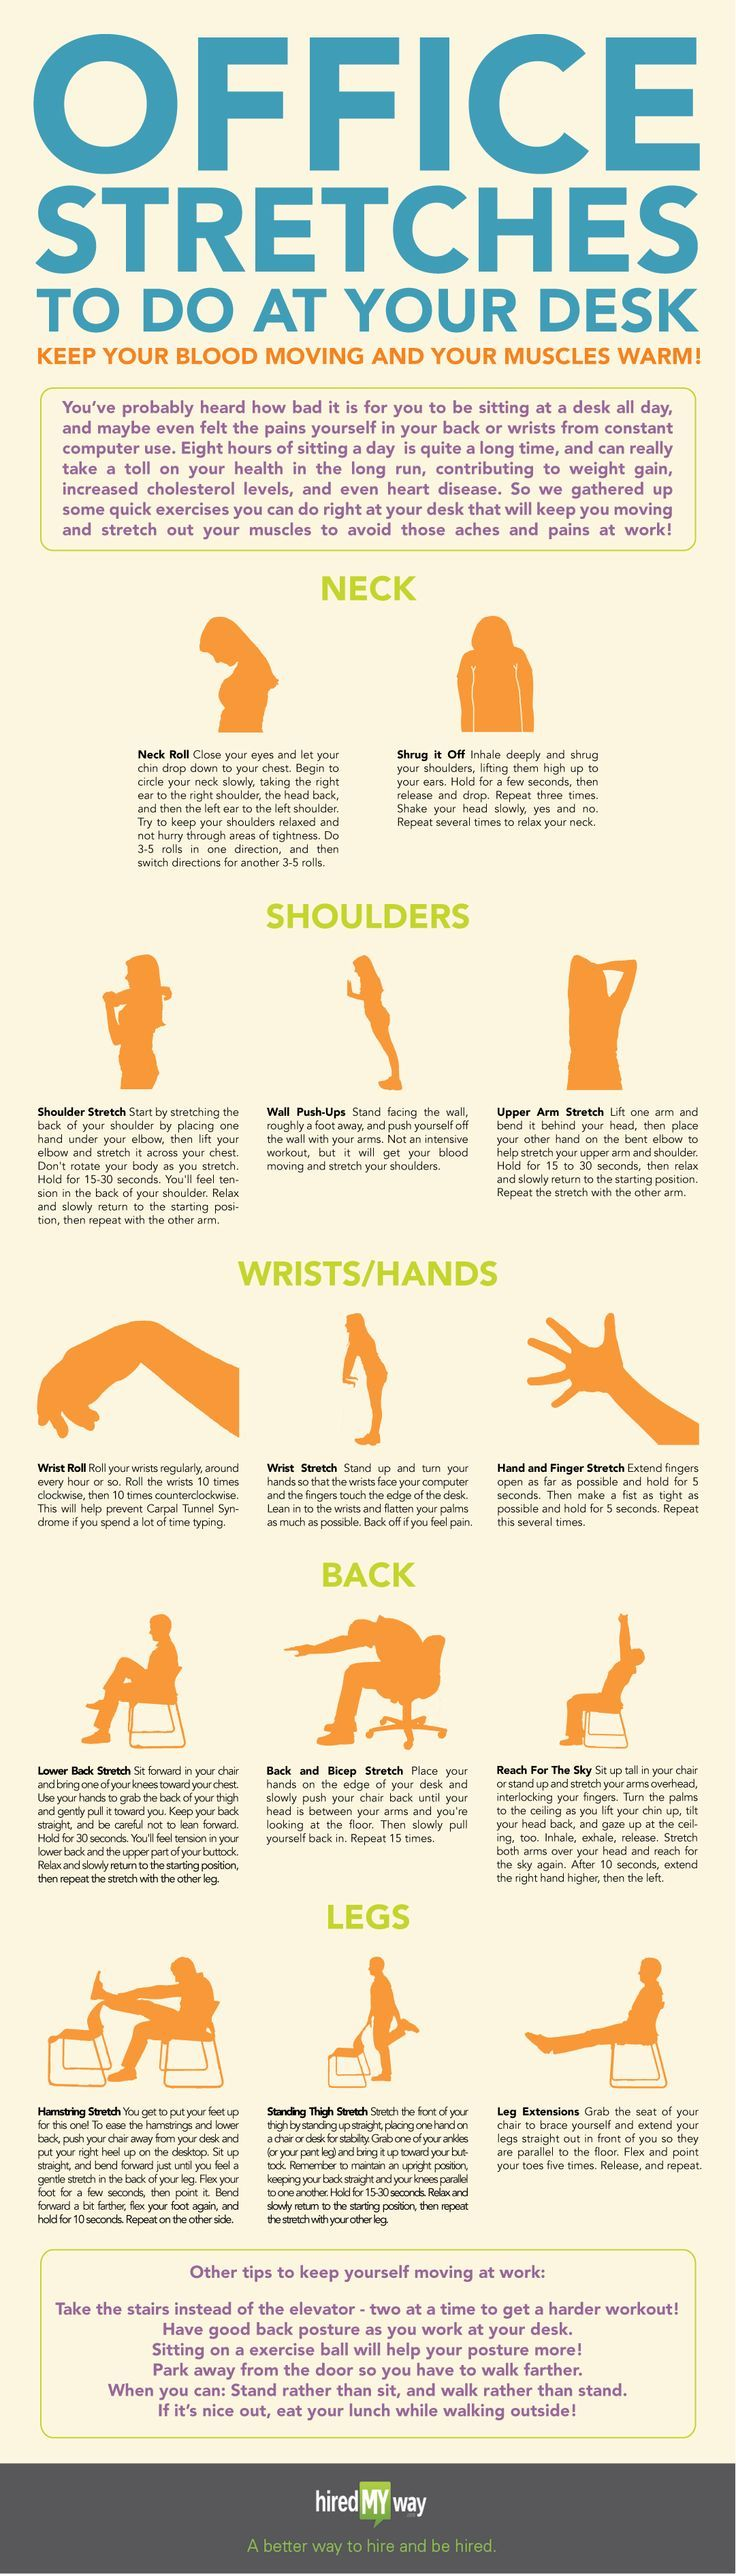 Office stretches to do at your desk. #healthDE: